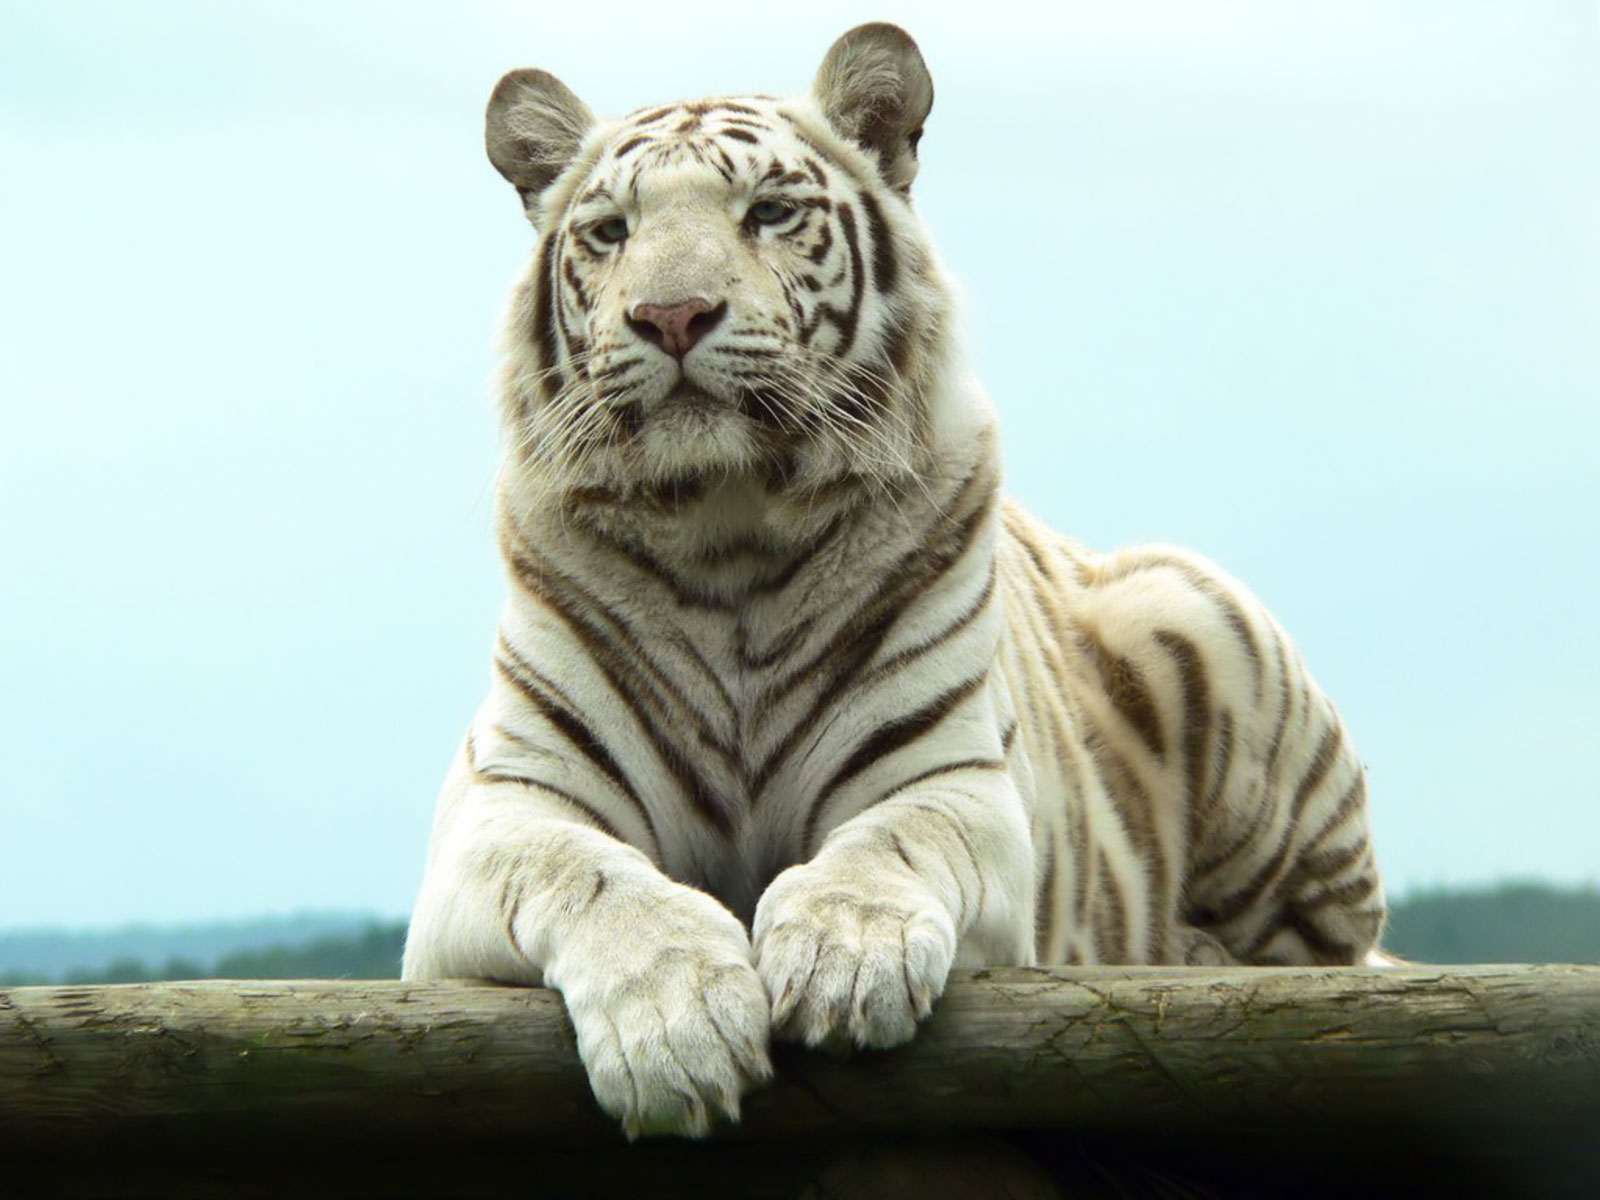 white tigers wallpapers download white tigers wallpapers wild 1600x1200